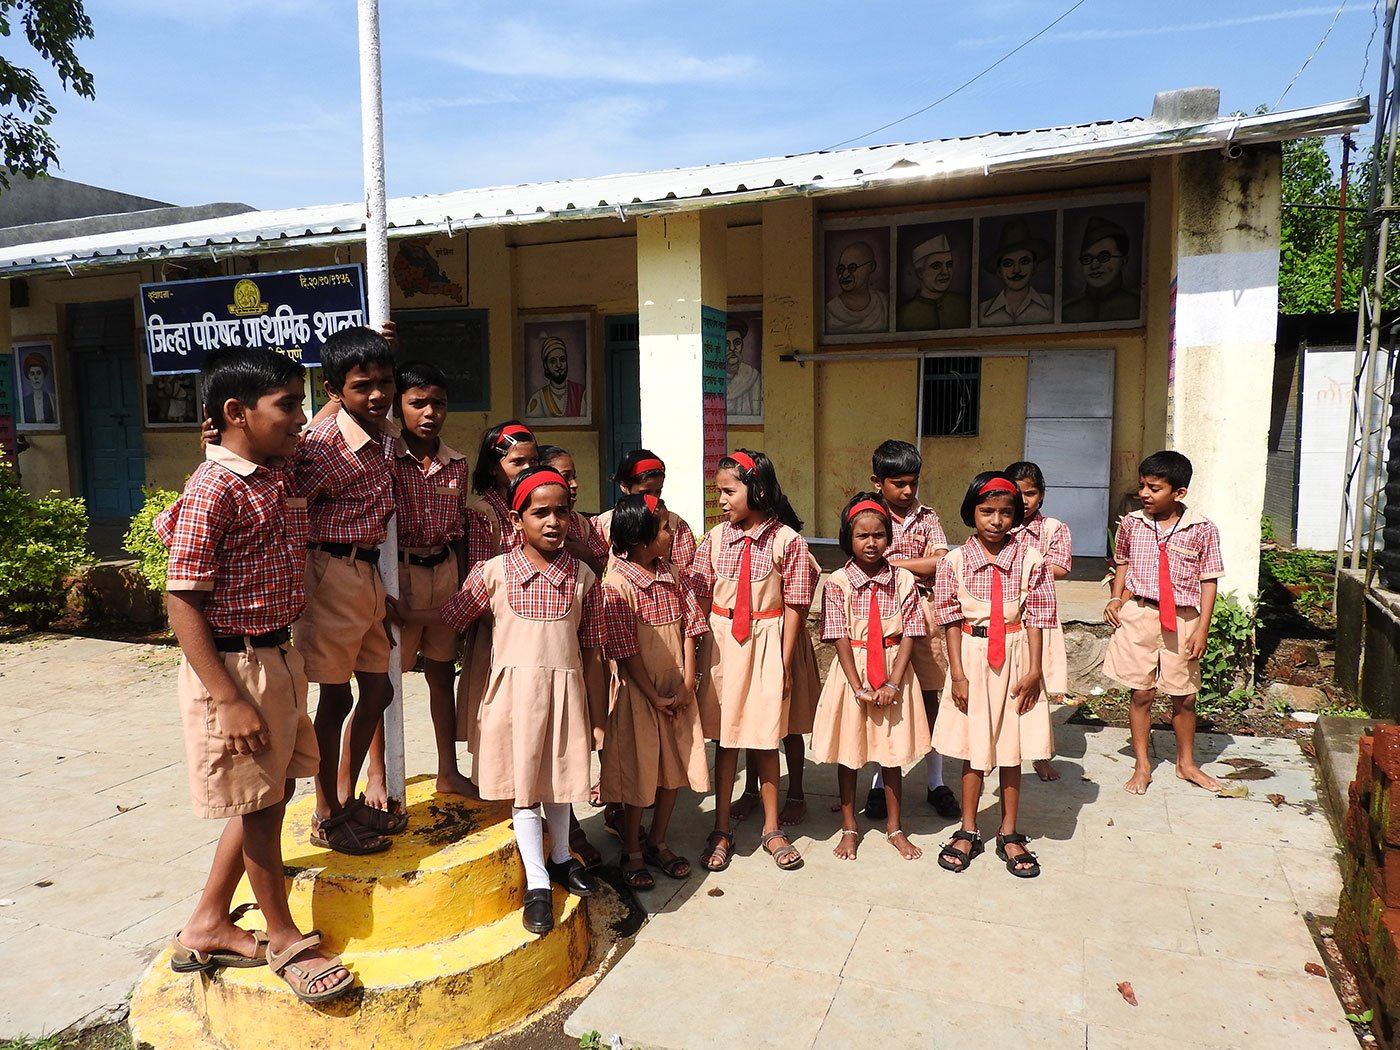 Children singing outside a school.